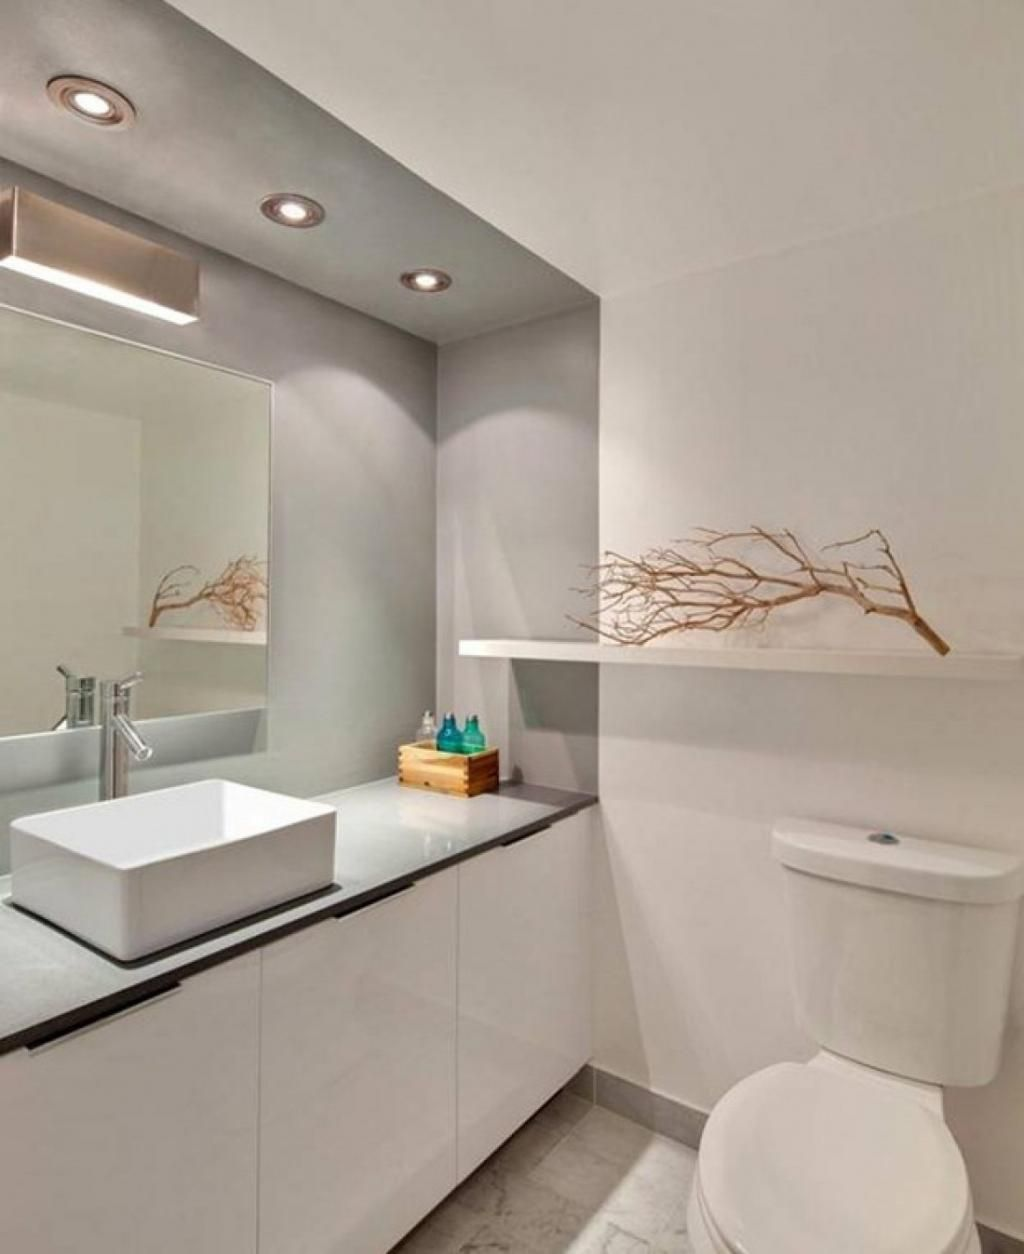 Beautiful Modern Apartment Bathroom Ideas Part - 1: Modern Bathroom Design Ideas - Modern Apartment Bathroom Designs - Dove Arts